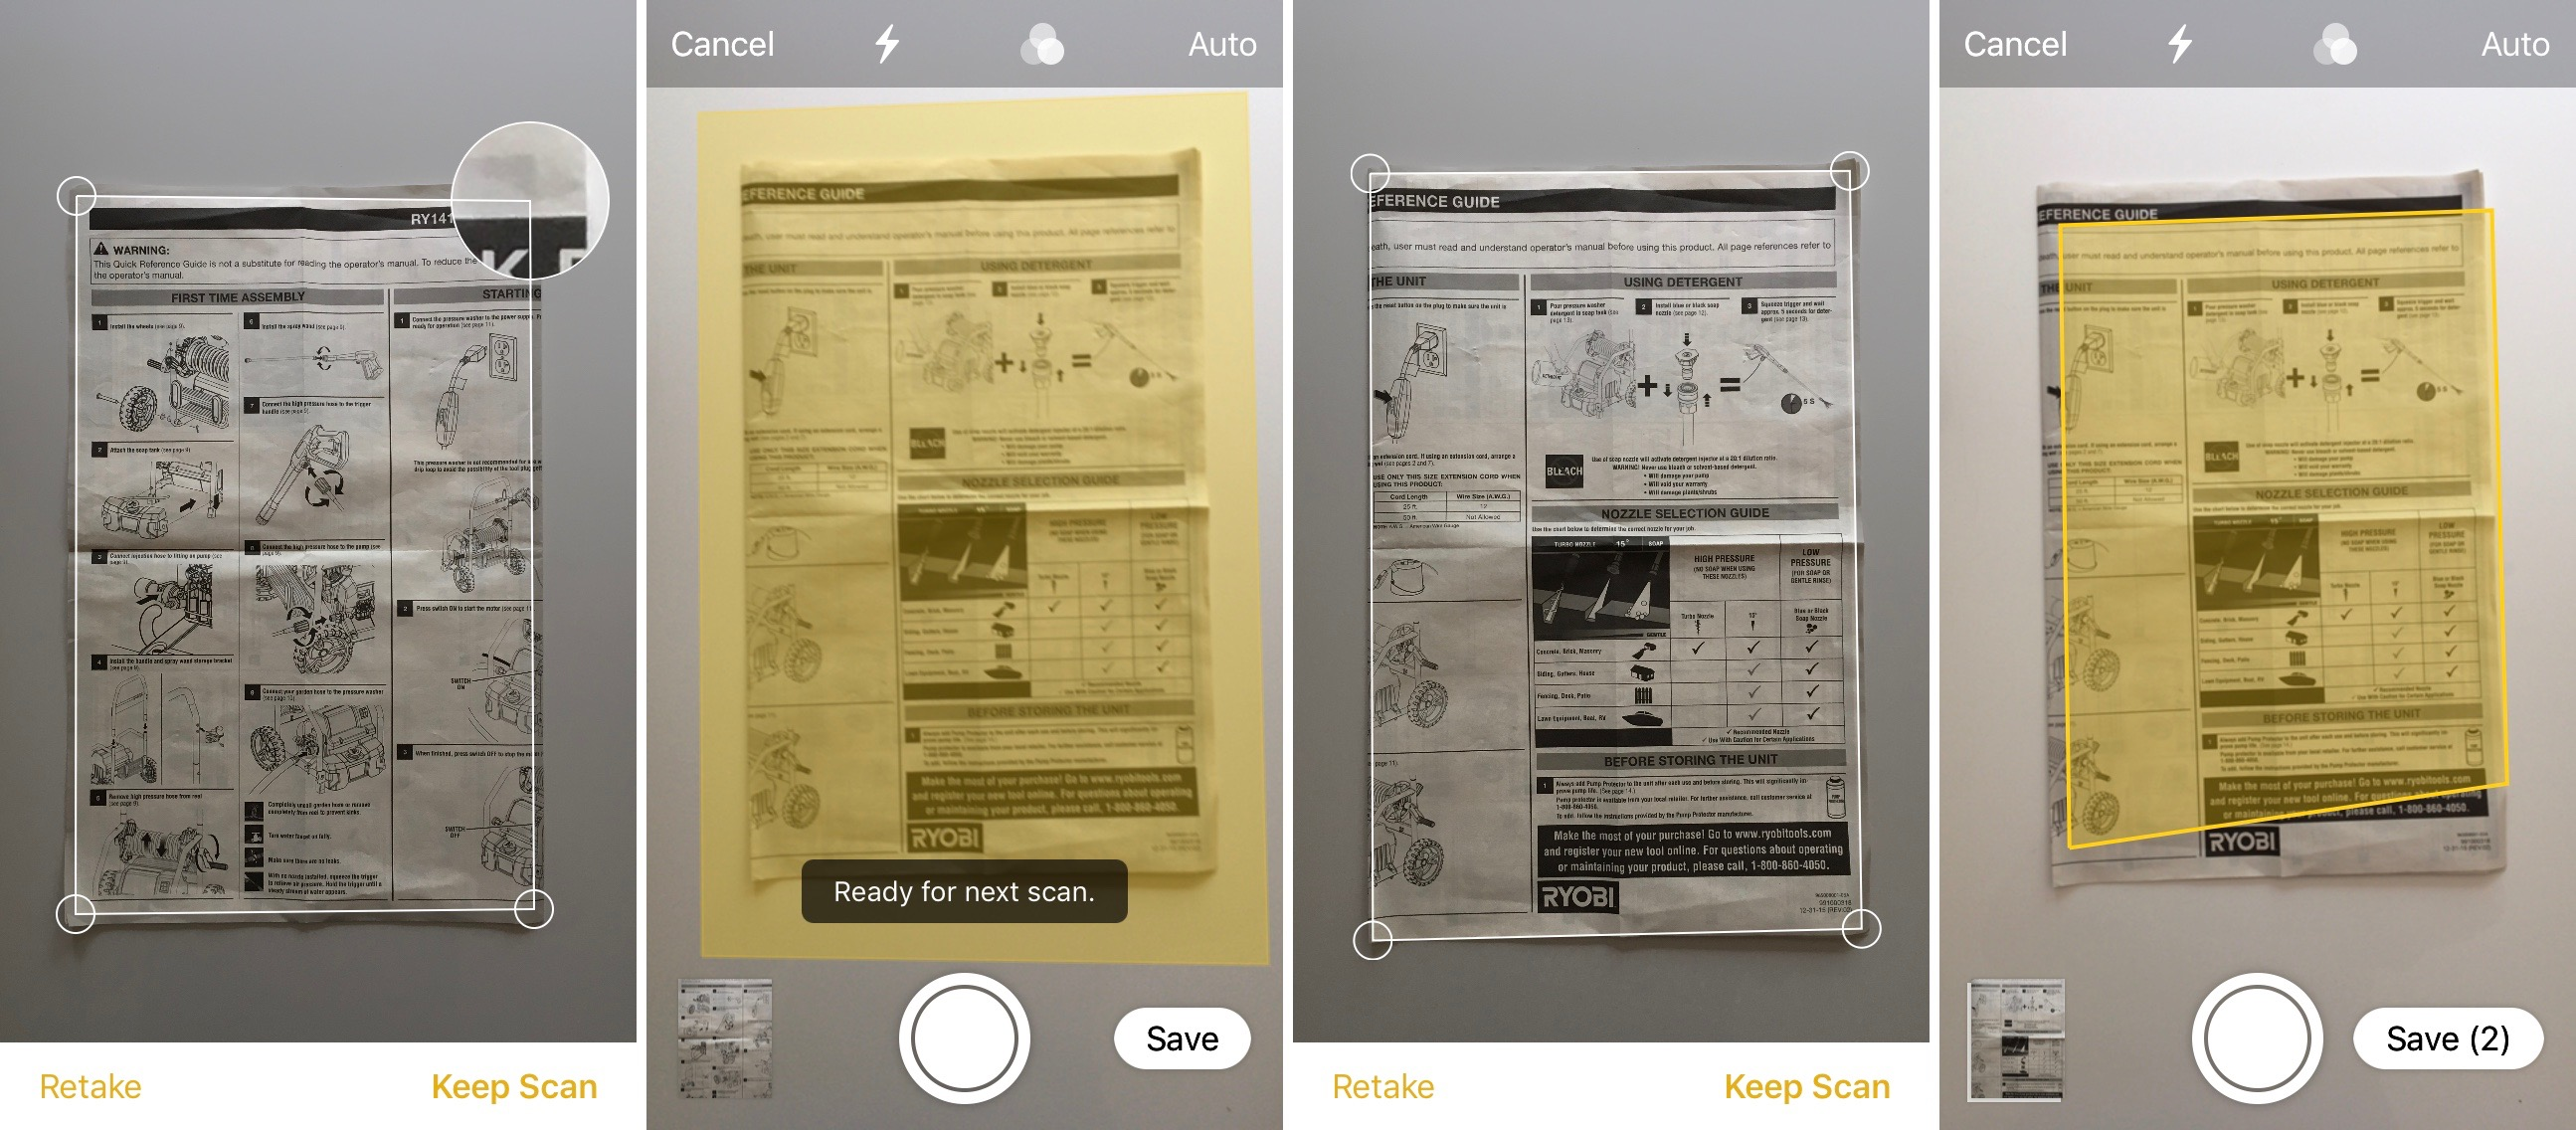 How to scan photos